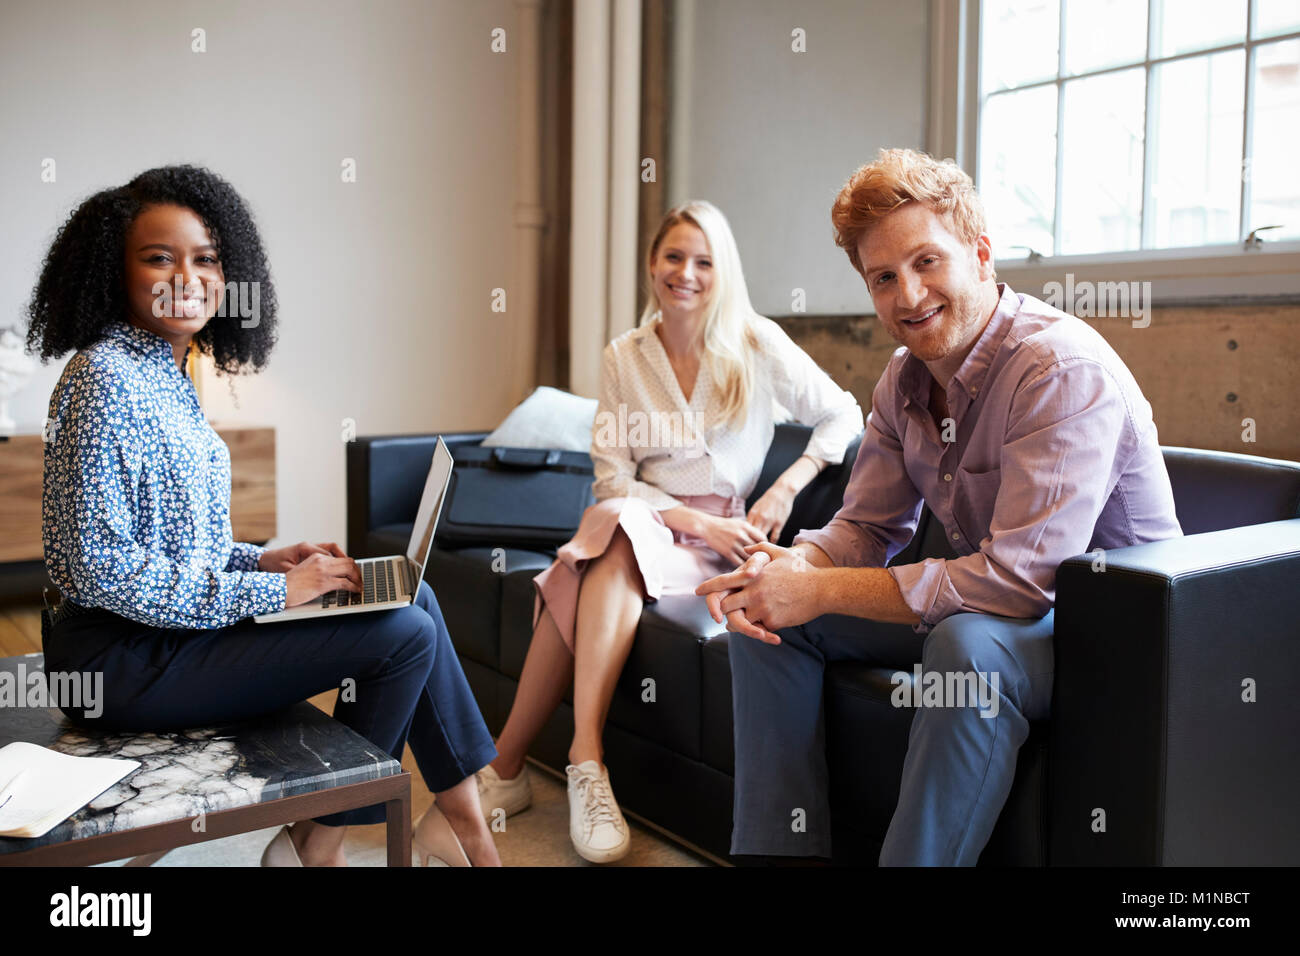 Three young colleagues at a casual work meeting look to camera - Stock Image